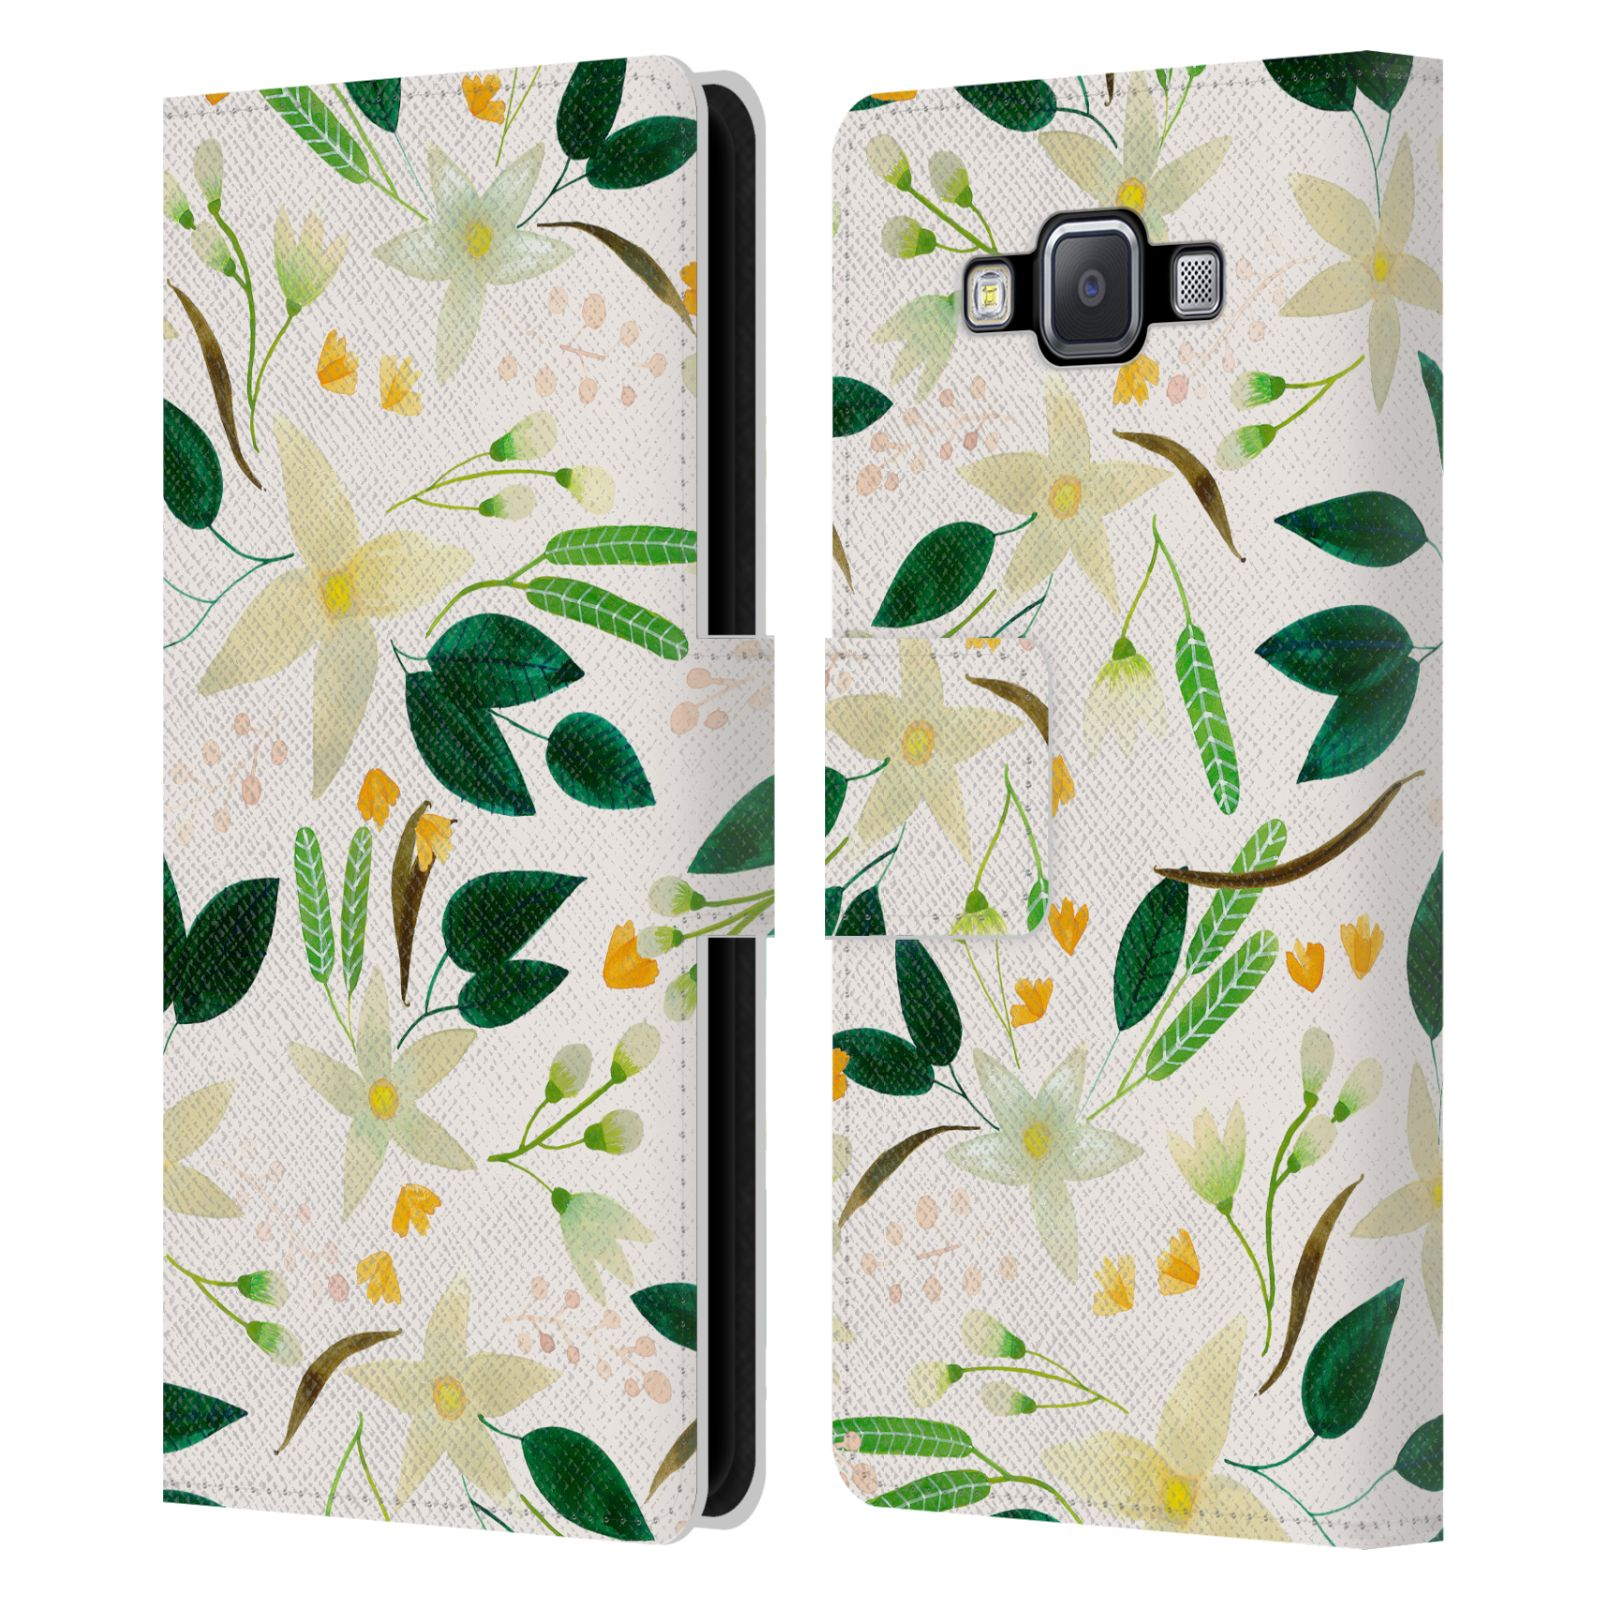 OFFICIAL-IISA-MONTTINEN-PATTERNS-LEATHER-BOOK-WALLET-CASE-FOR-SAMSUNG-PHONES-2